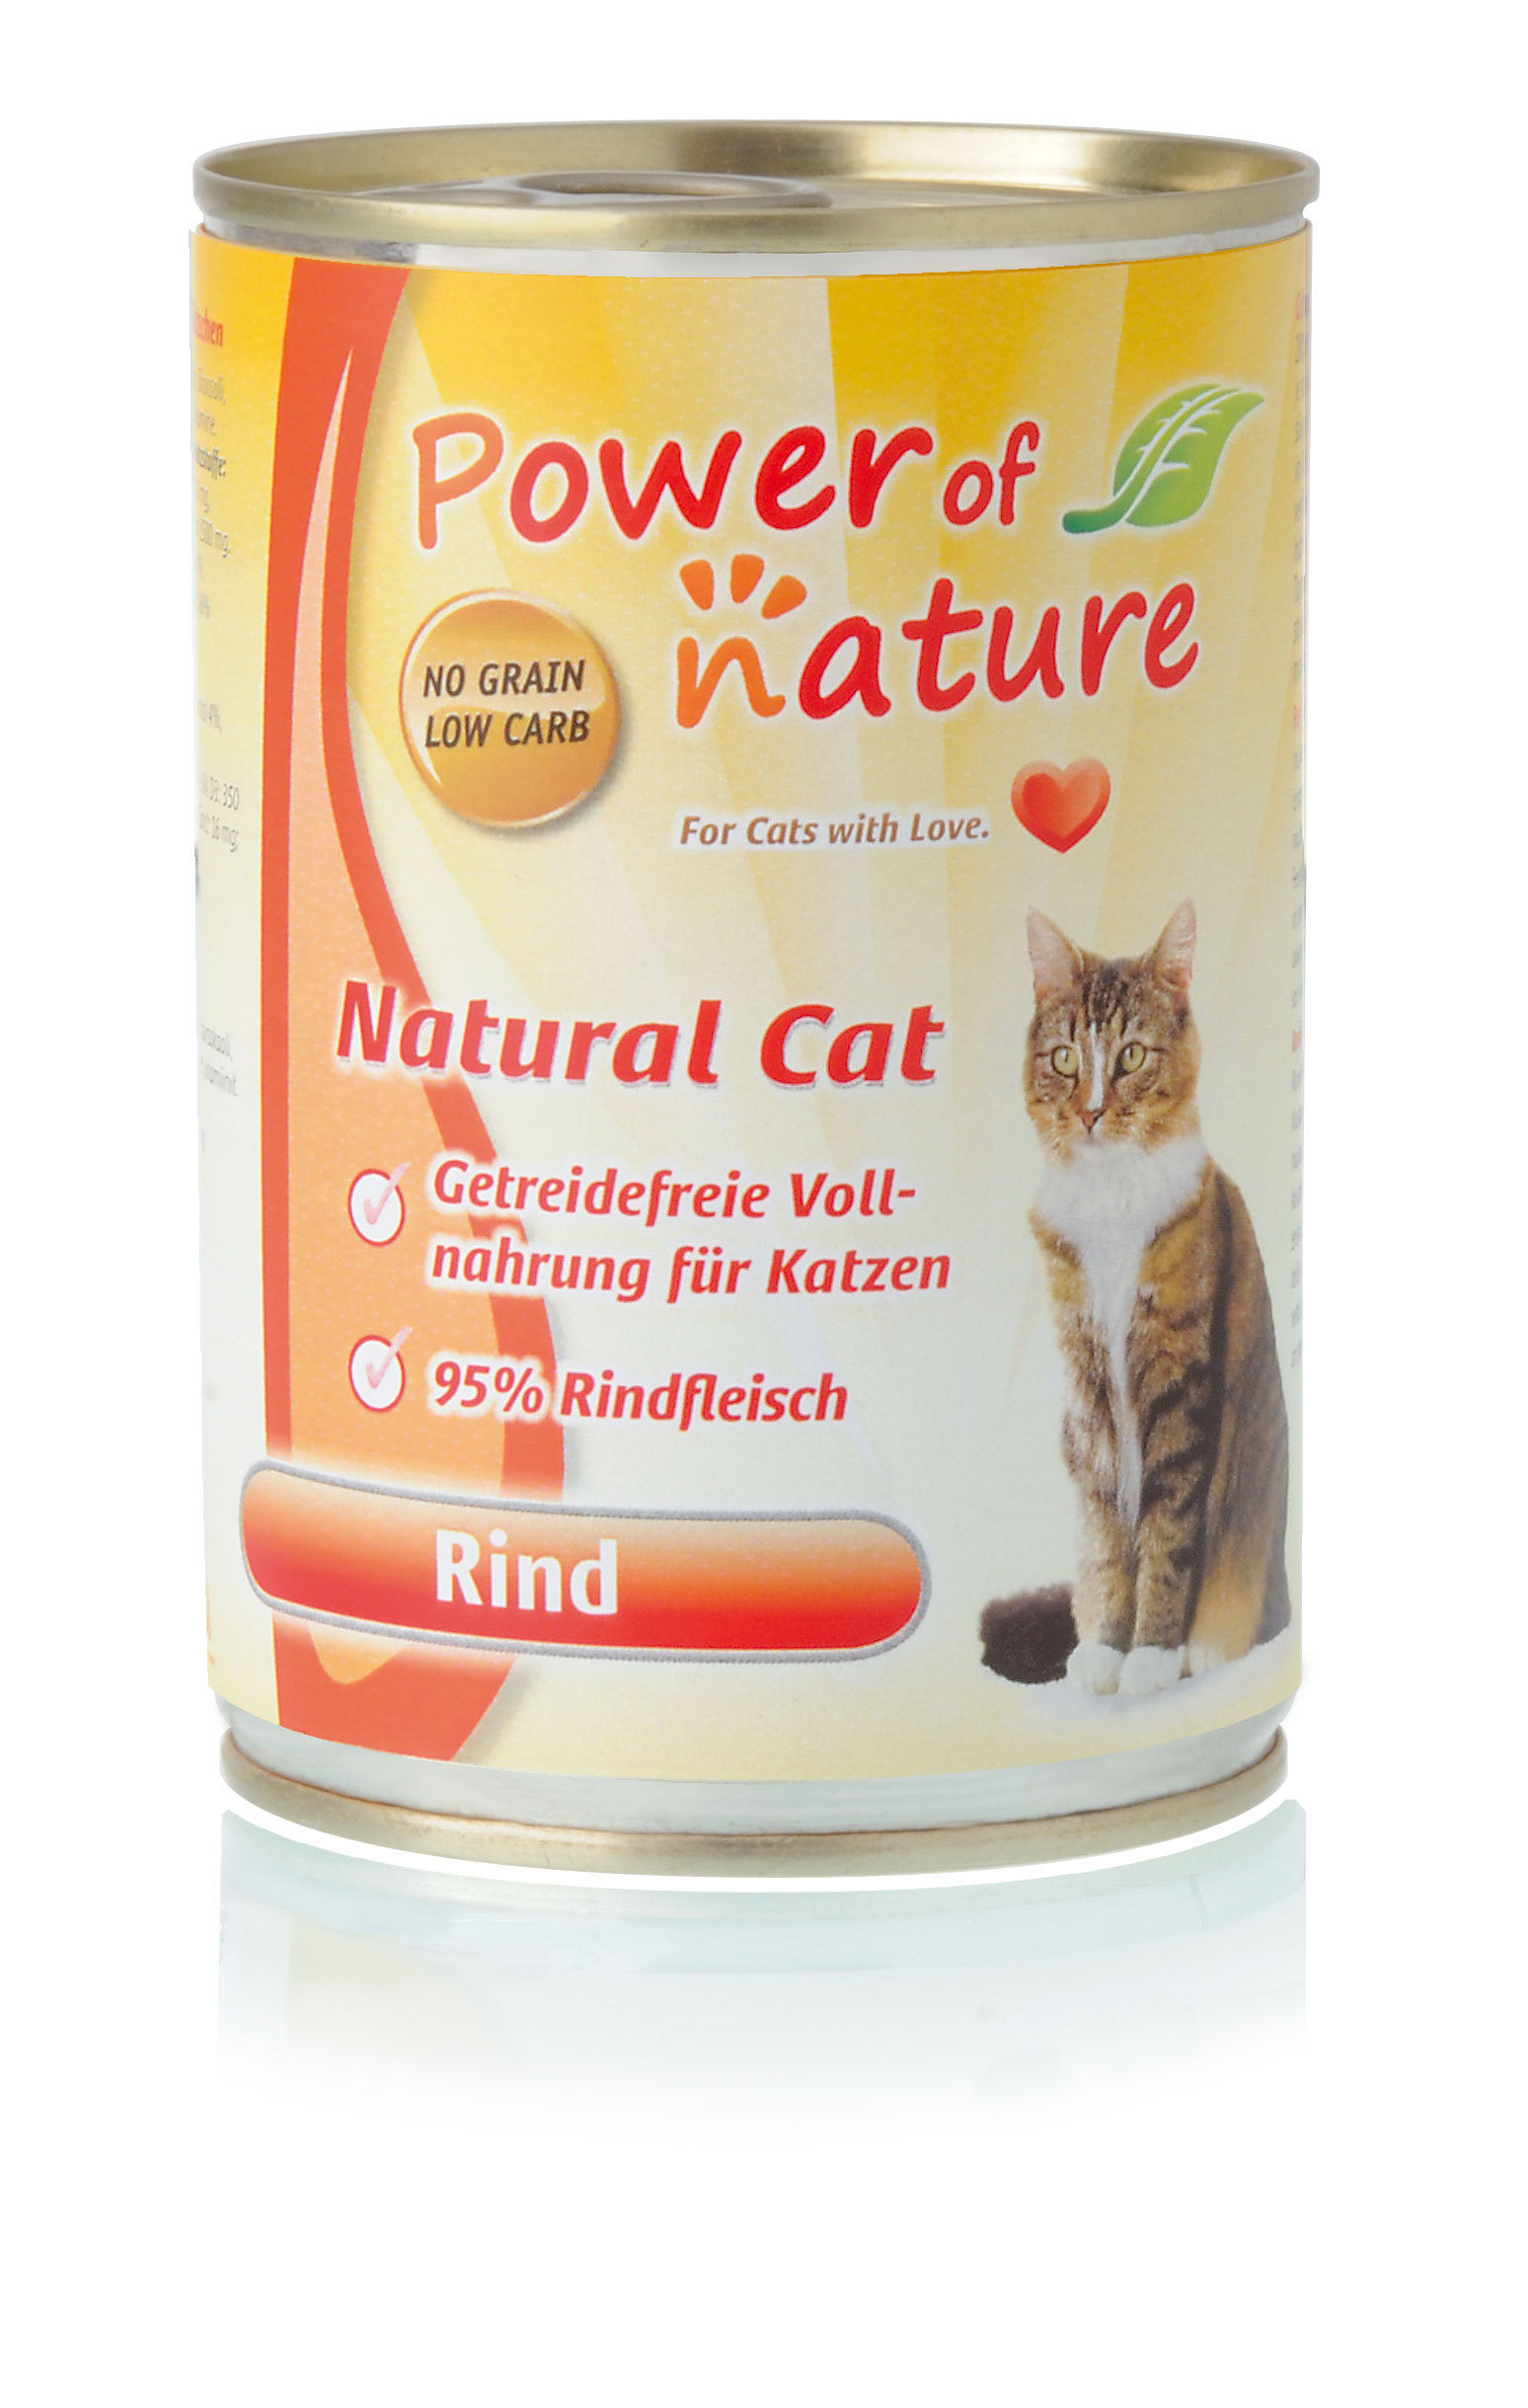 Power of Nature Natural Cat Dose Rind 24 x 400g